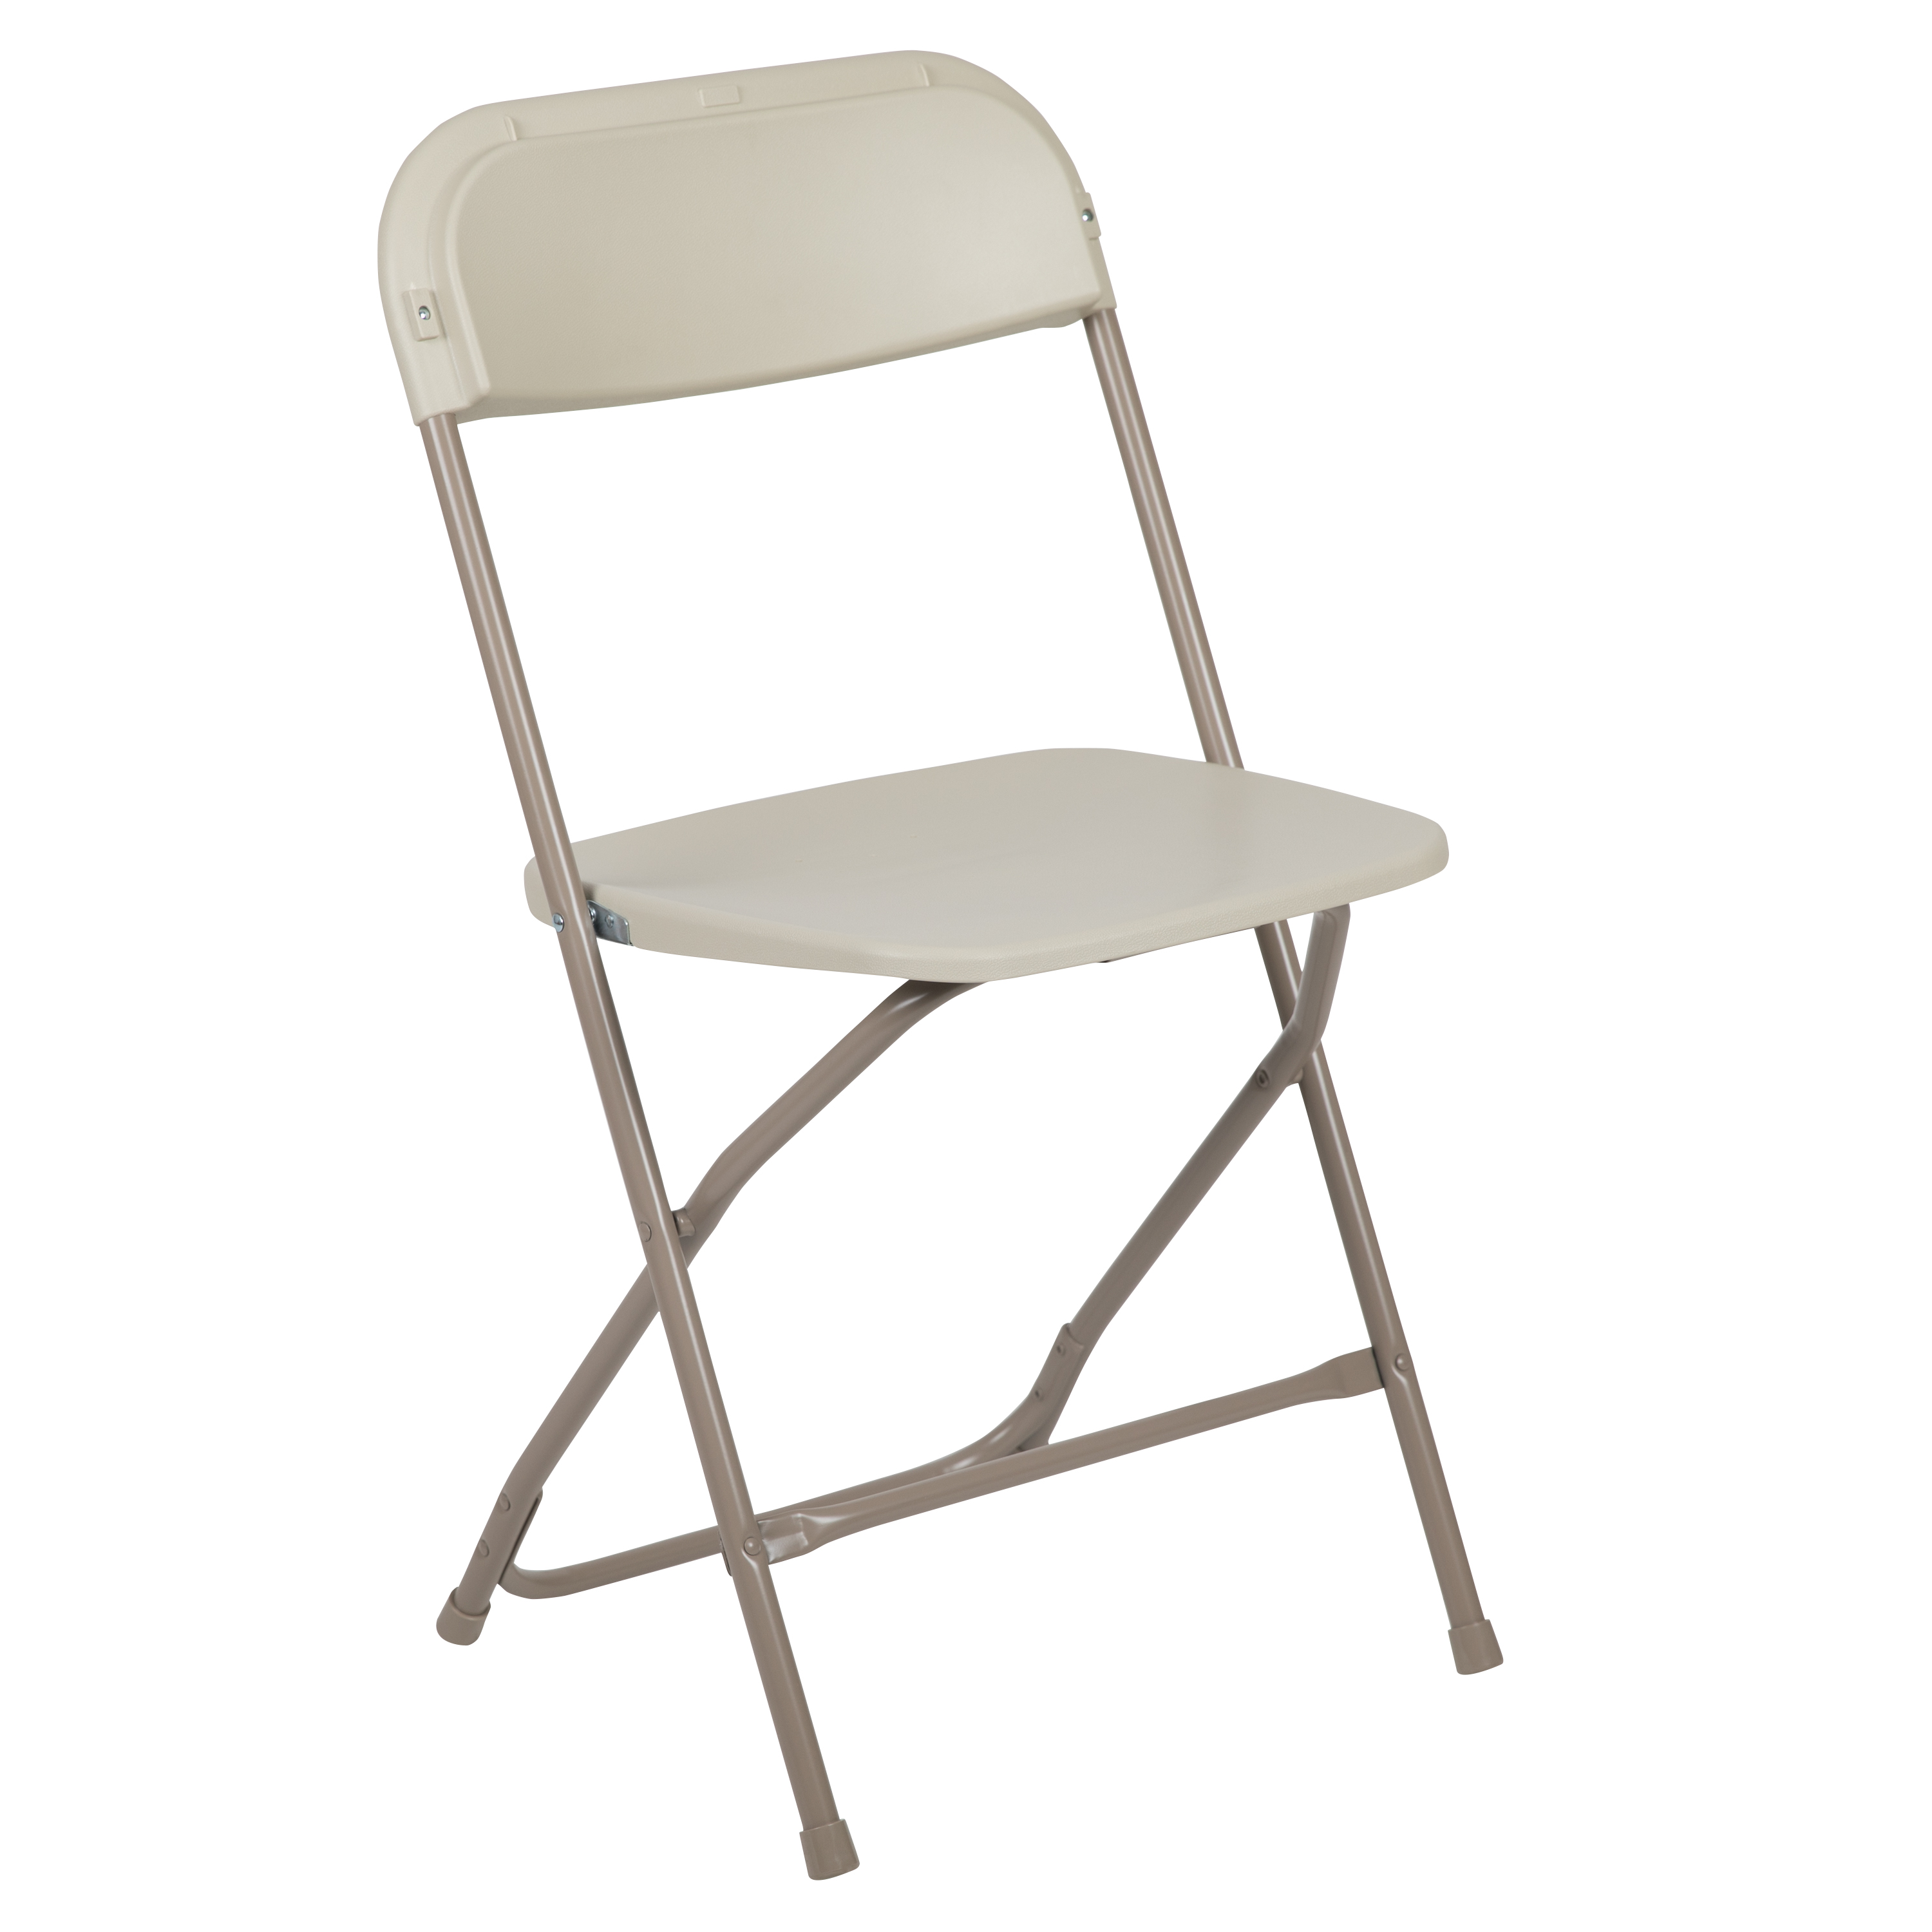 Wondrous 10 Pack Commercial Wedding Event Stackable Plastic Folding Chair Ncnpc Chair Design For Home Ncnpcorg